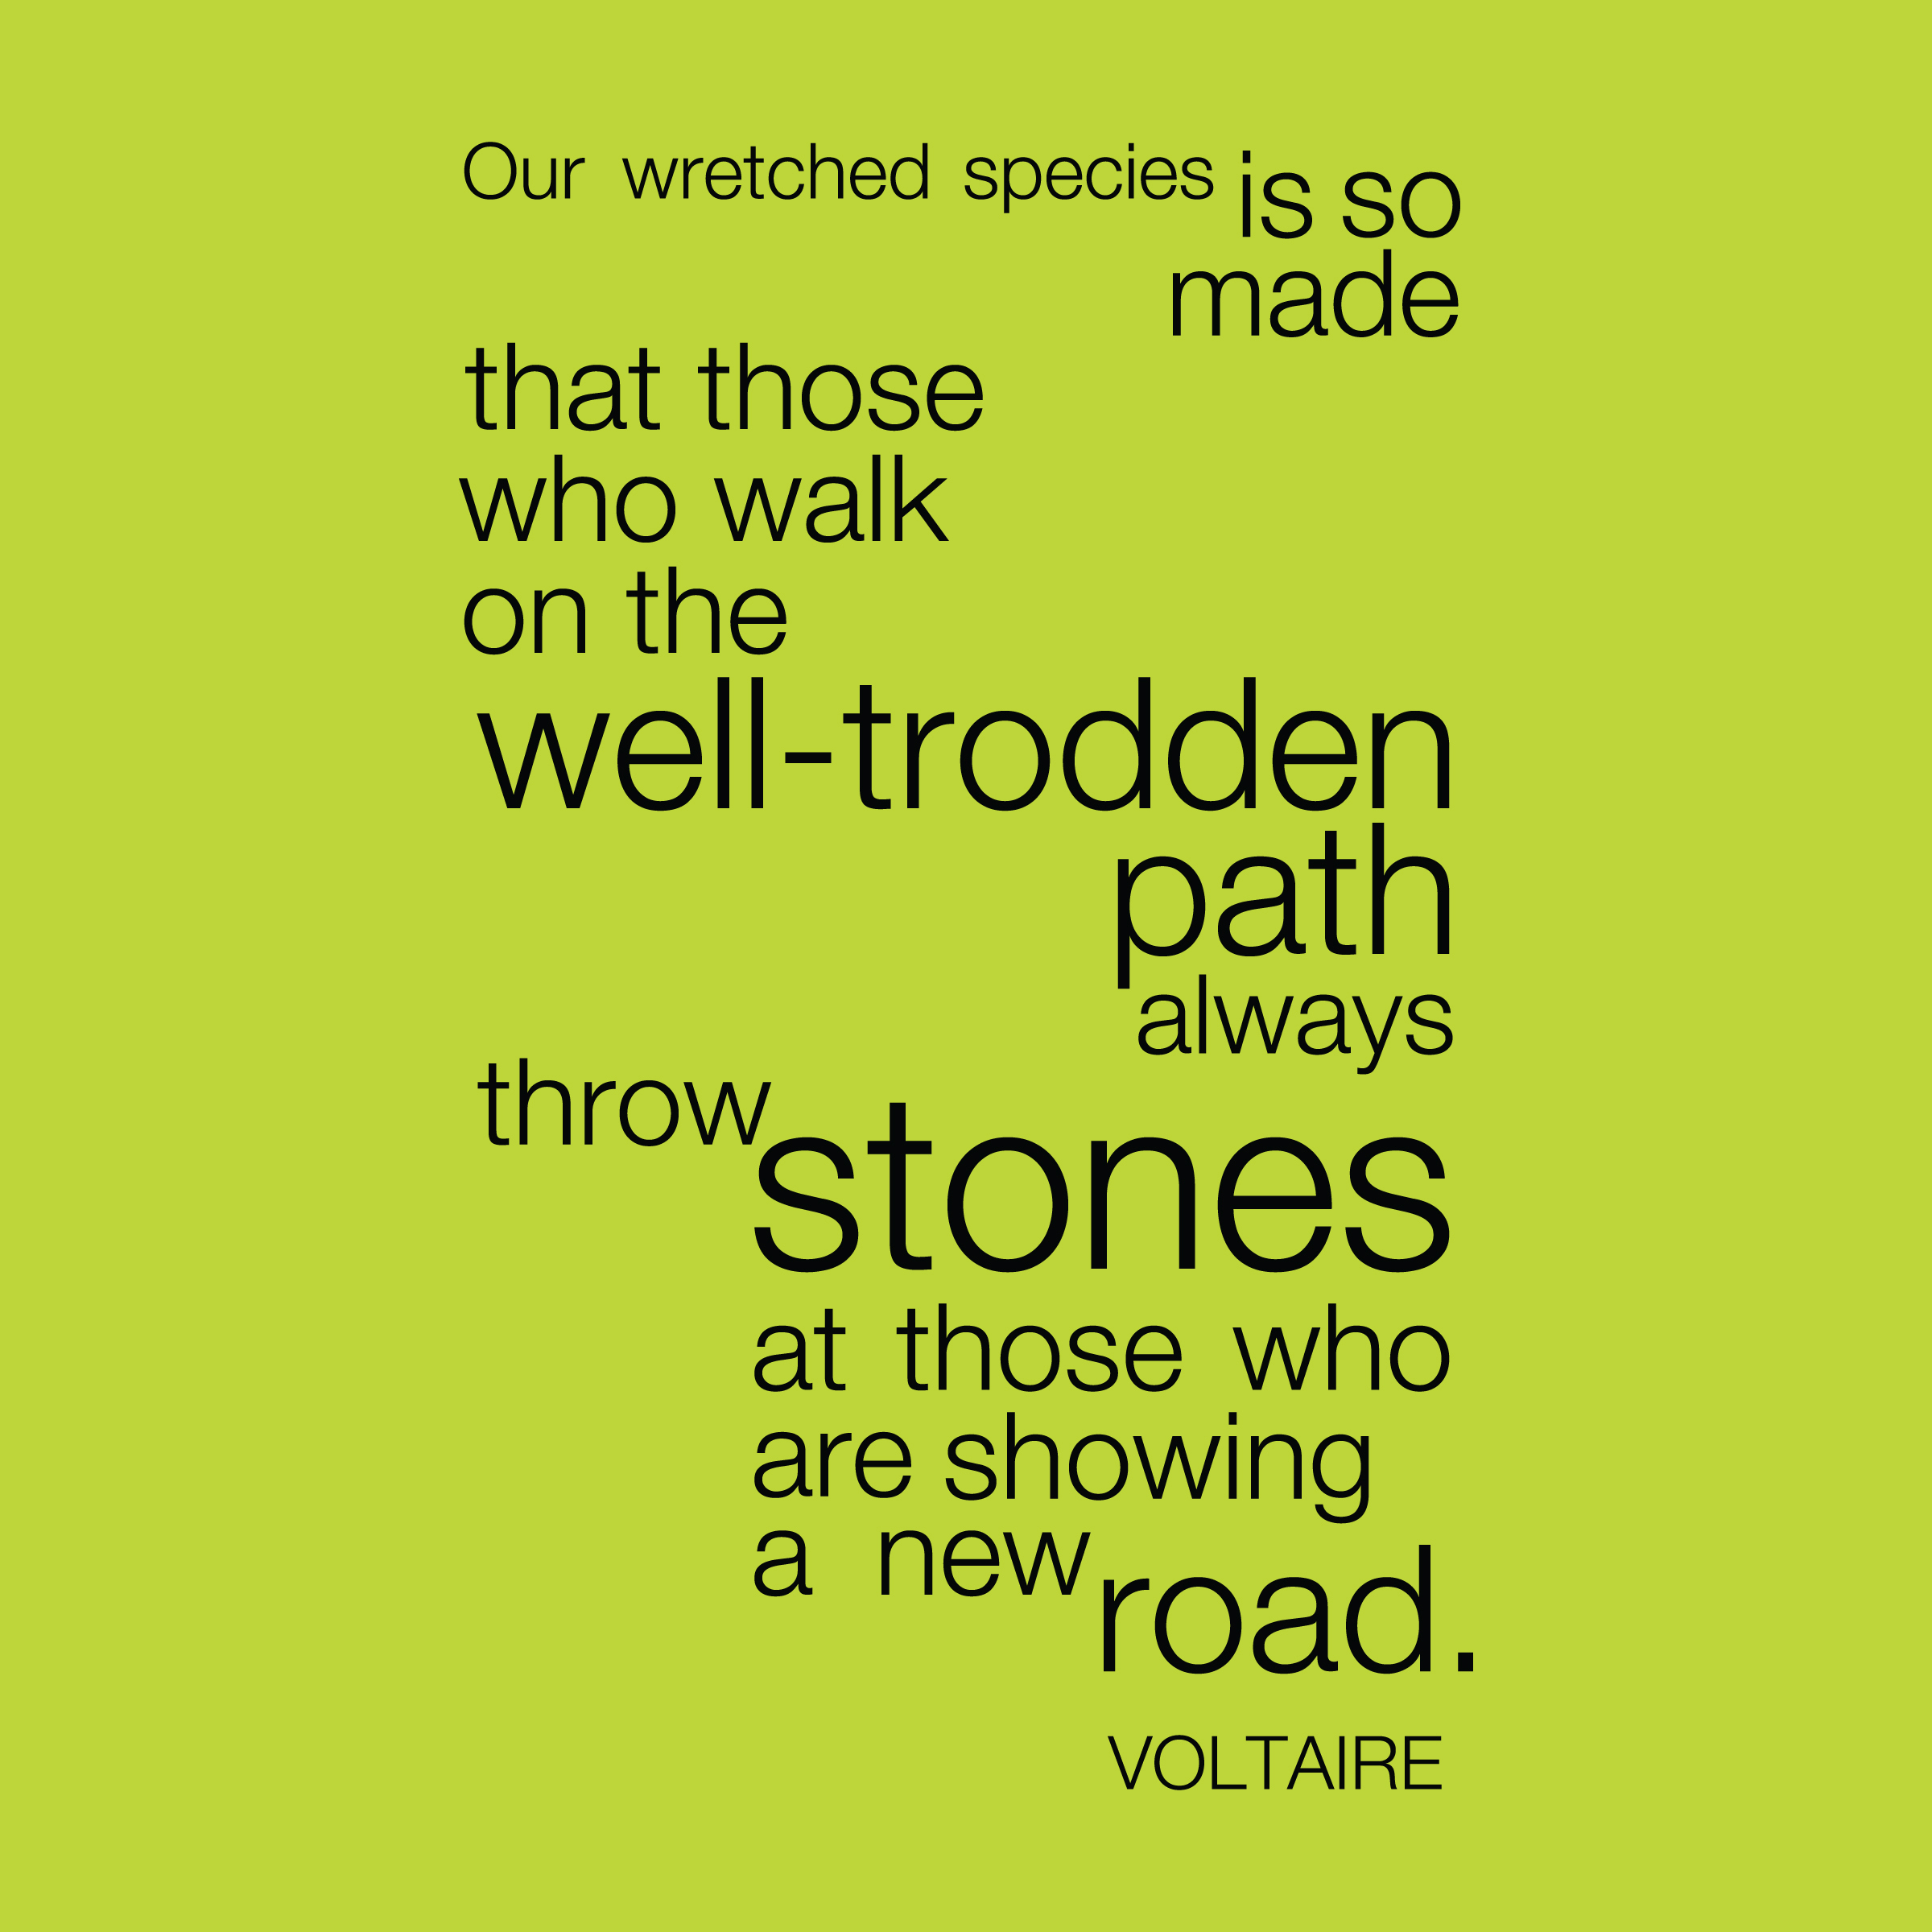 Quotes Voltaire Stunning 8 Ancient Voltaire Quotes To Ponder  Ignore Limits